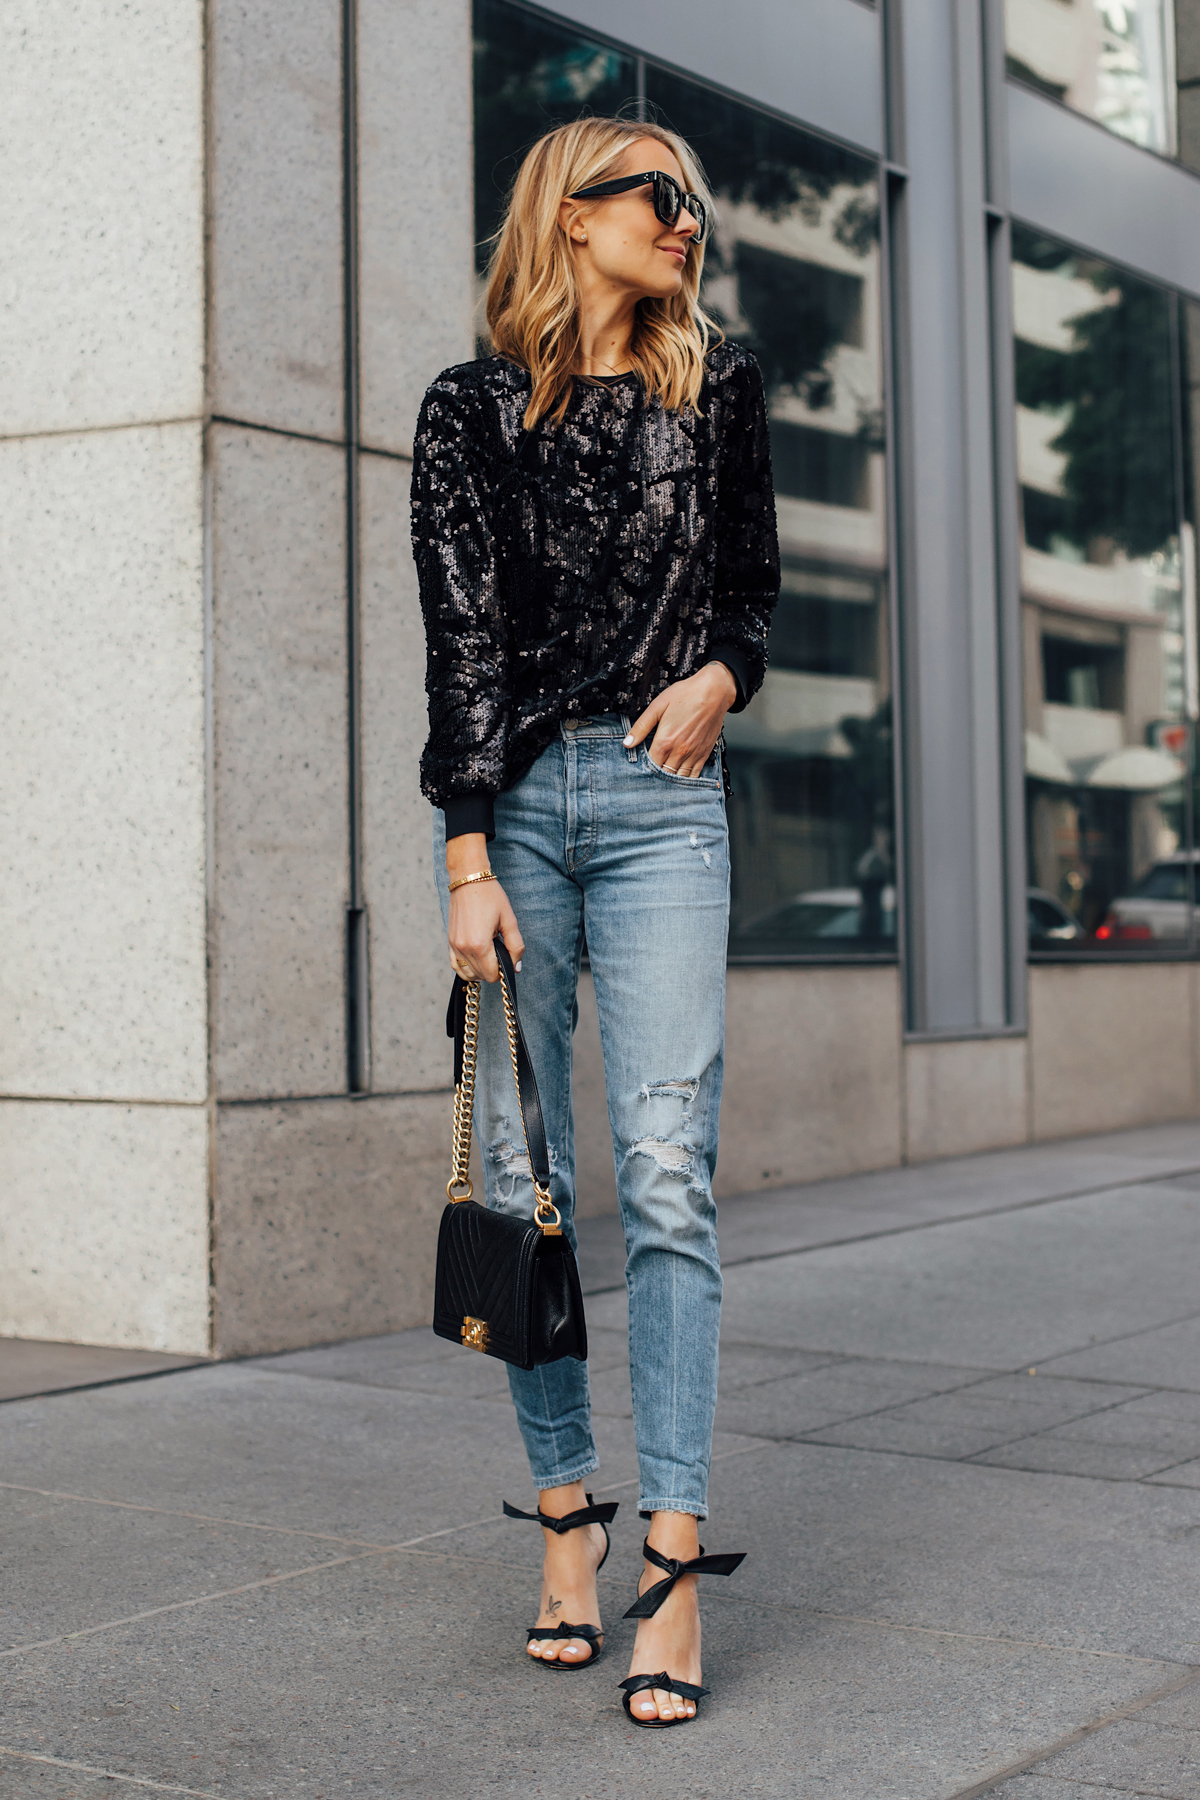 f4955970a9ca9 Blonde Woman Wearing Black Sequin Top Ripped Skinny Jeans Chanel Black Boy  Bag Black Ankle Tie